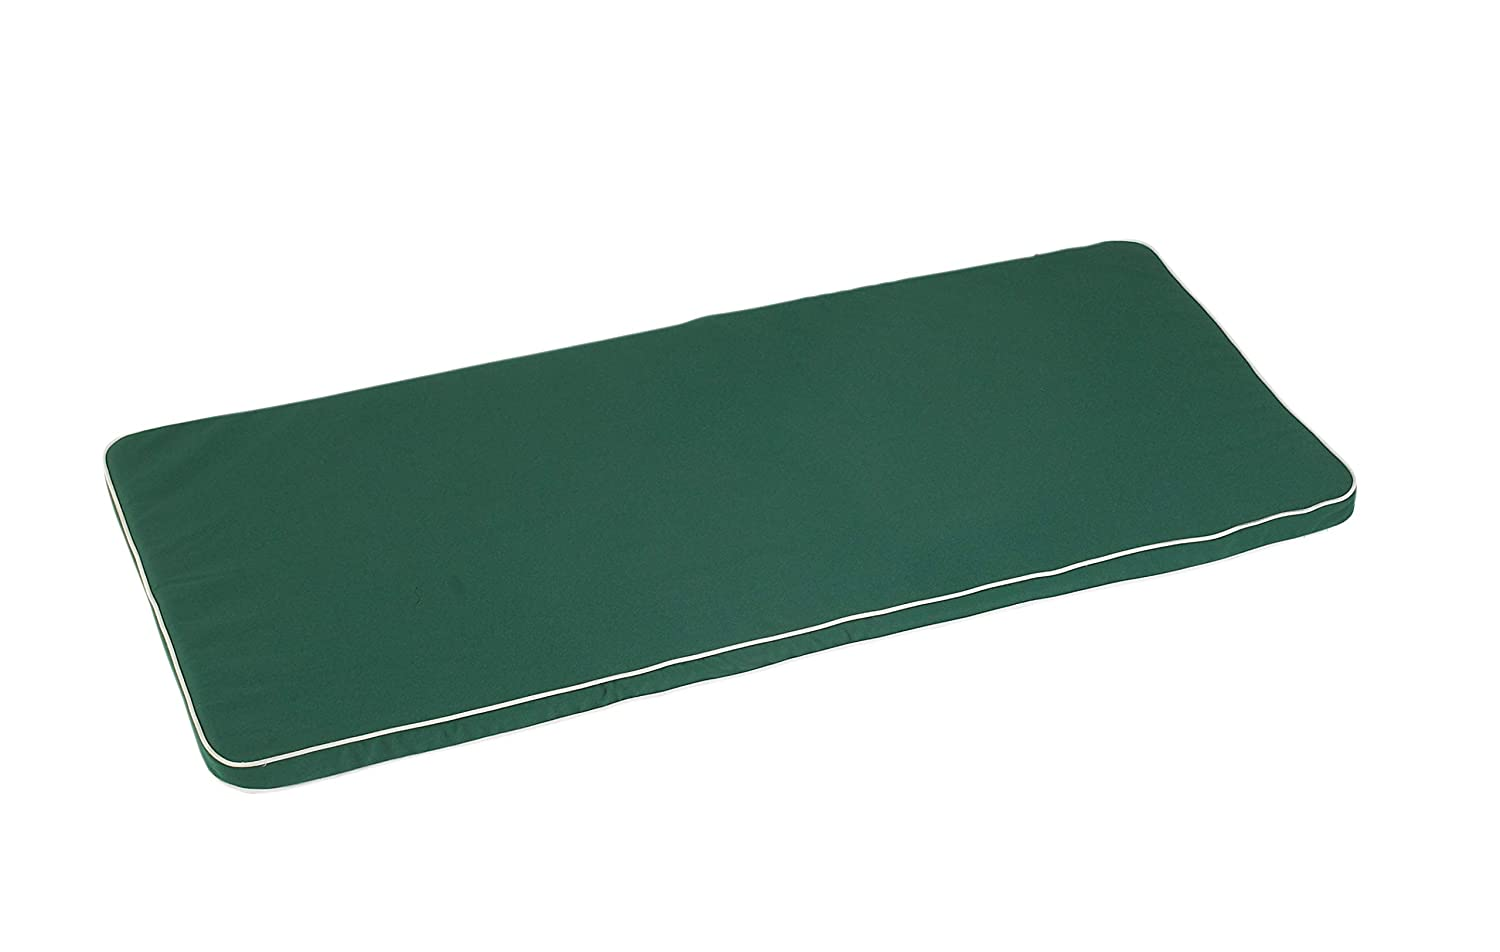 Bench Seat Pad 144cm x 46cm Bench Seat Pad Green with Ecru Piping